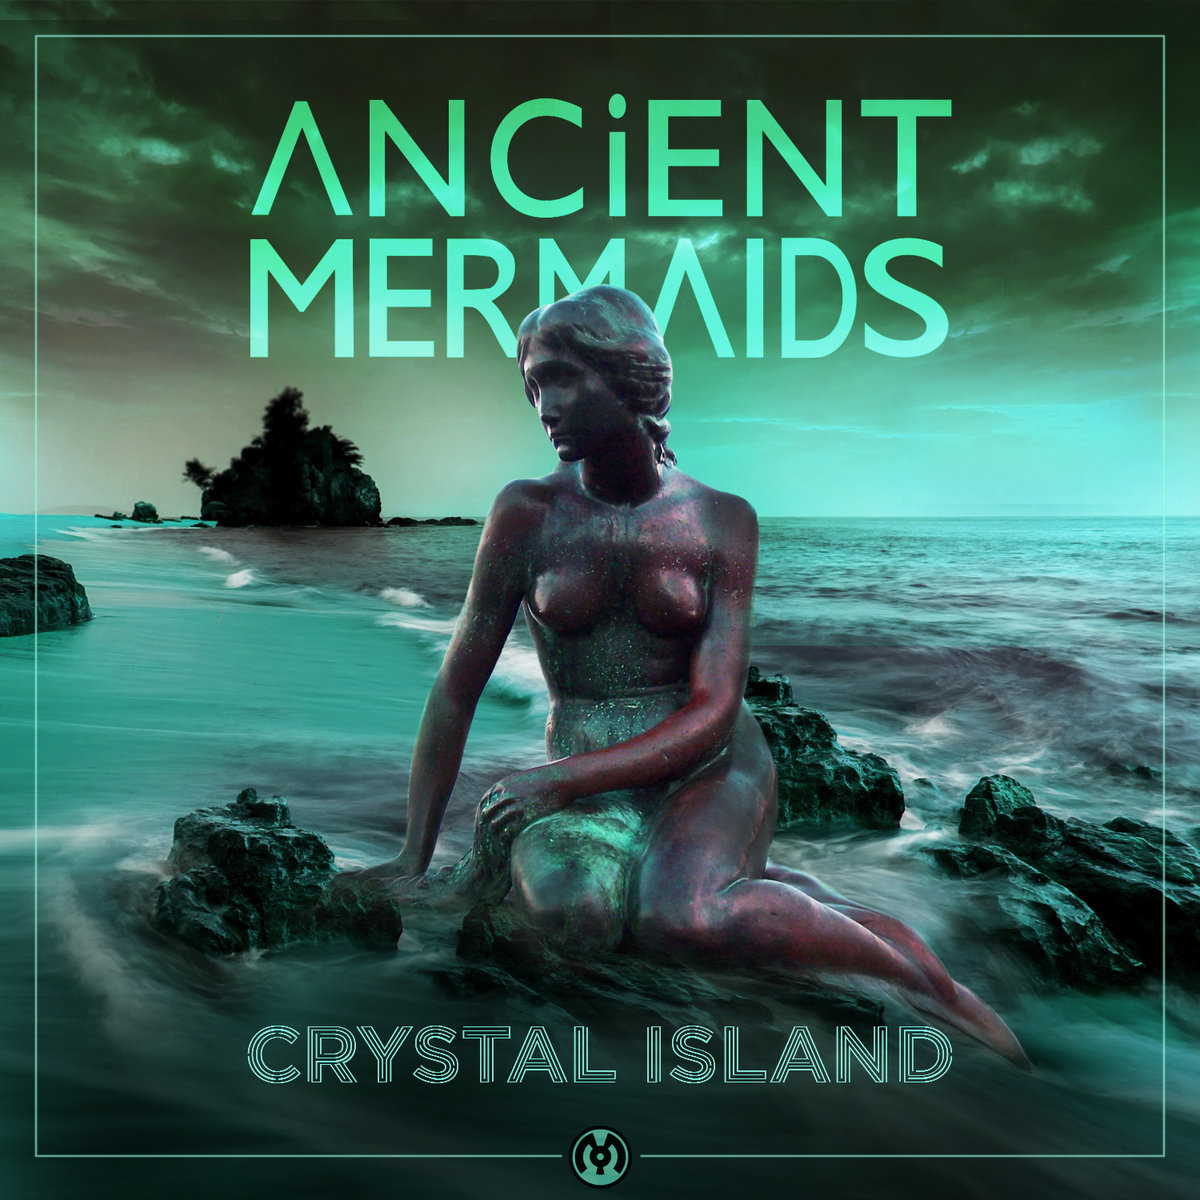 Ancient Mermaids - Crystal Island @ 'Crystal Island' album (electronic, dubstep)